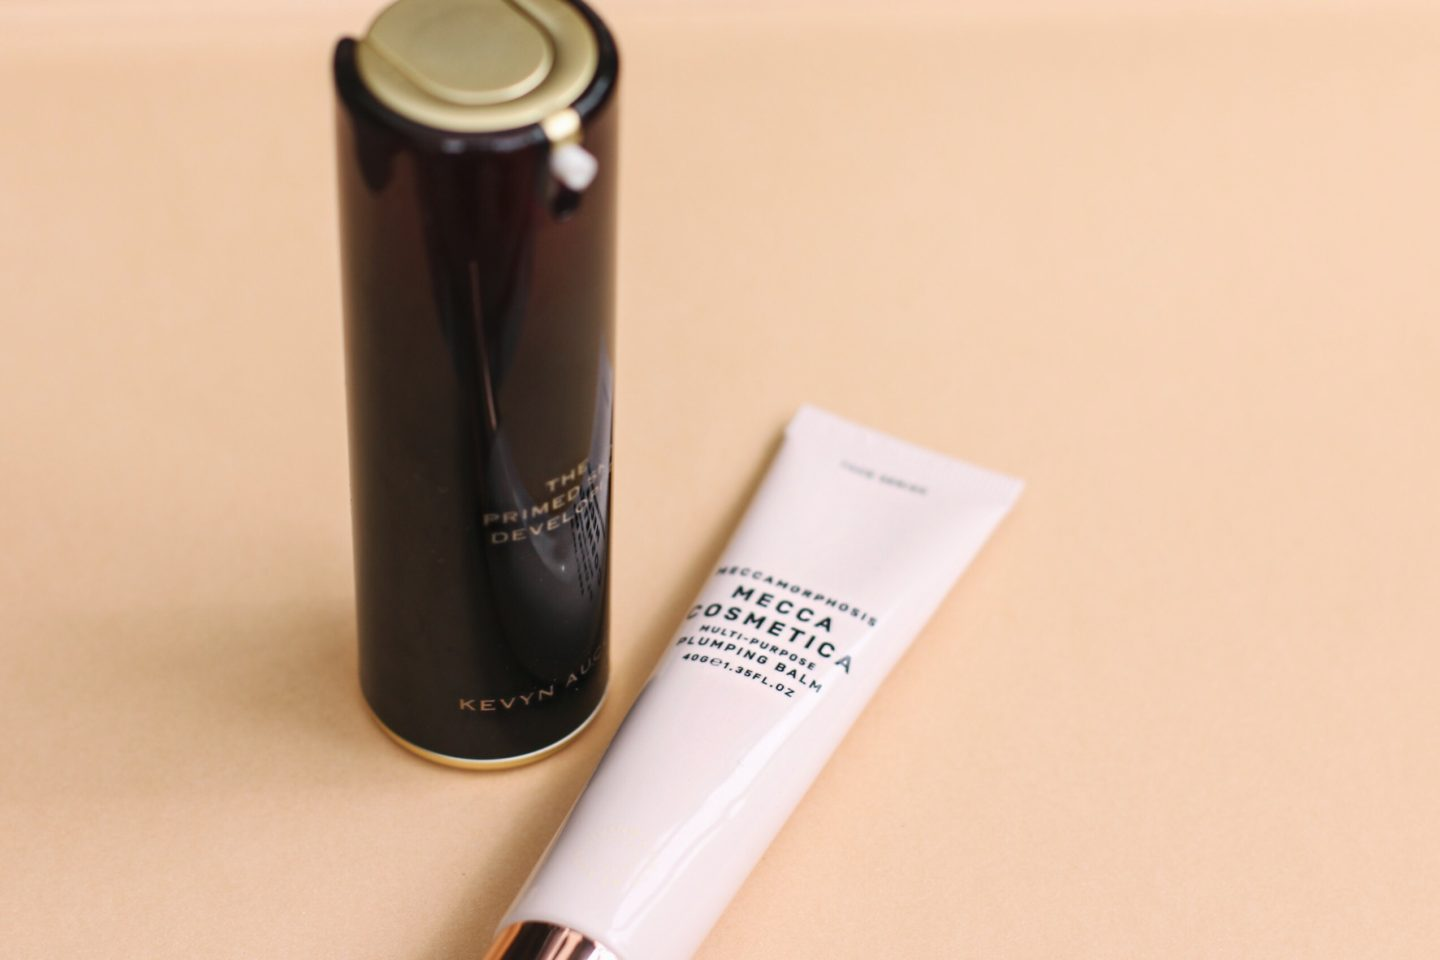 Kevyn Aucoin The Primed Skin Developer and Mecca Plumping Balm